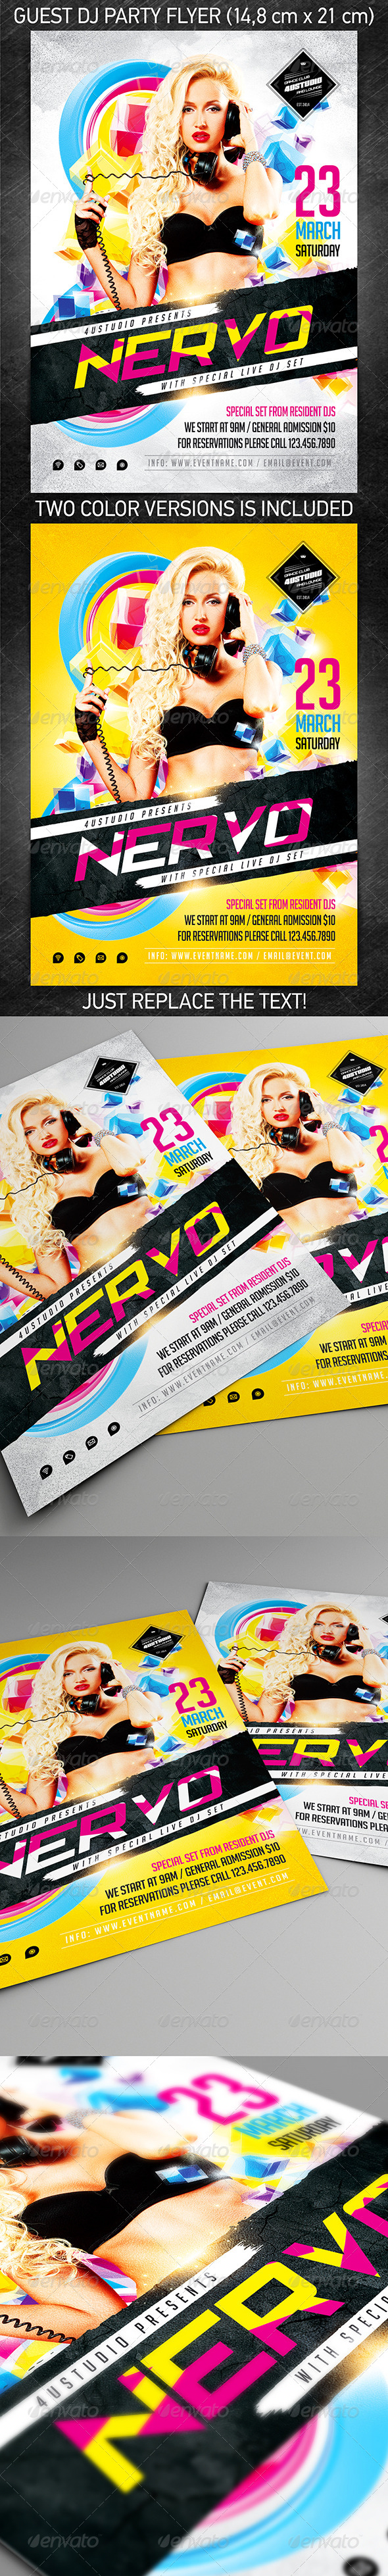 Guest DJ party flyer vol.3 - Clubs & Parties Events